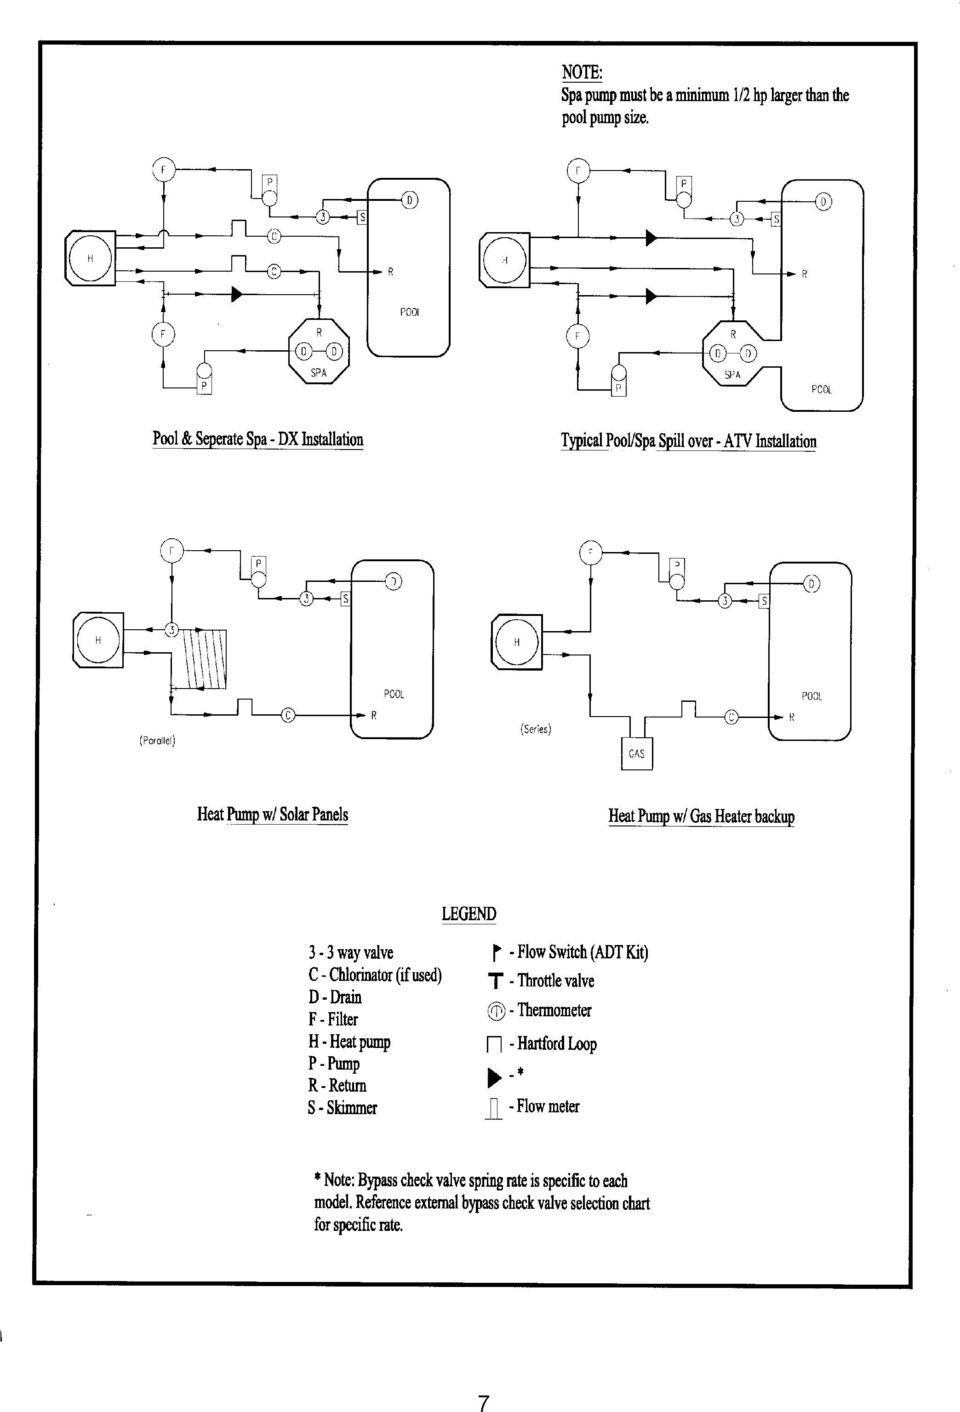 Aqua Pro Pool Heat Pump Wiring Diagram Libraries Flo